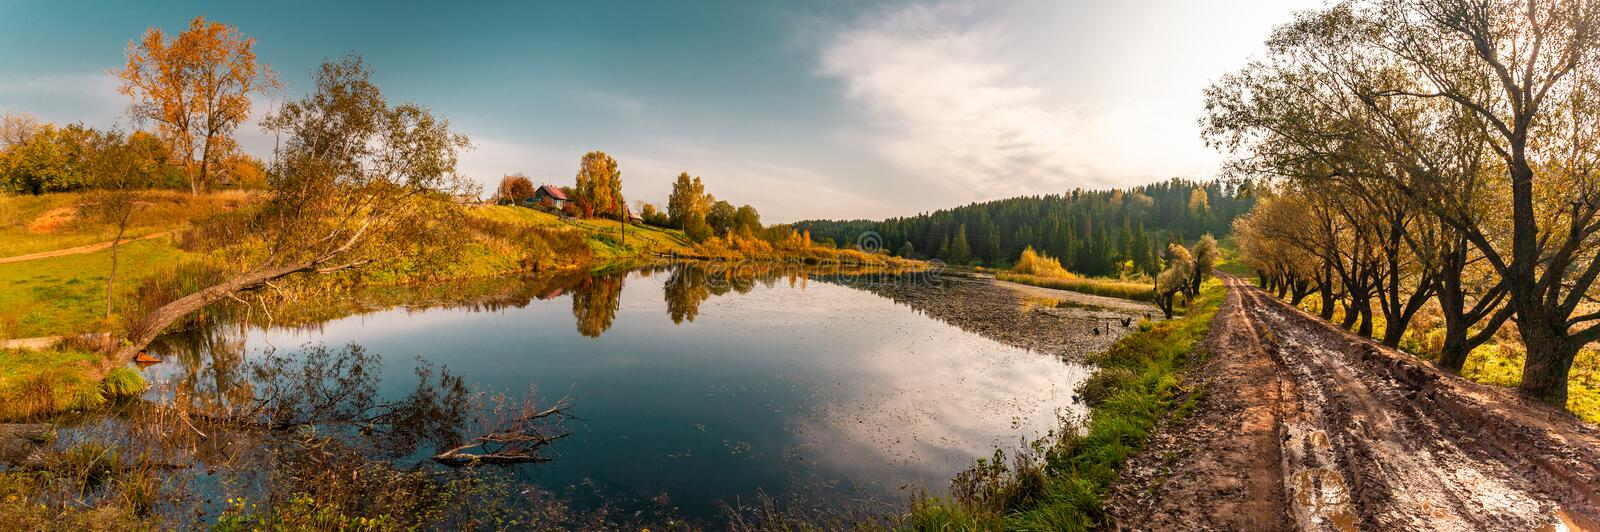 The lake near the village, with reflection of sky, trees and houses on a water smooth surface, a panorama from several frames royalty free stock photos